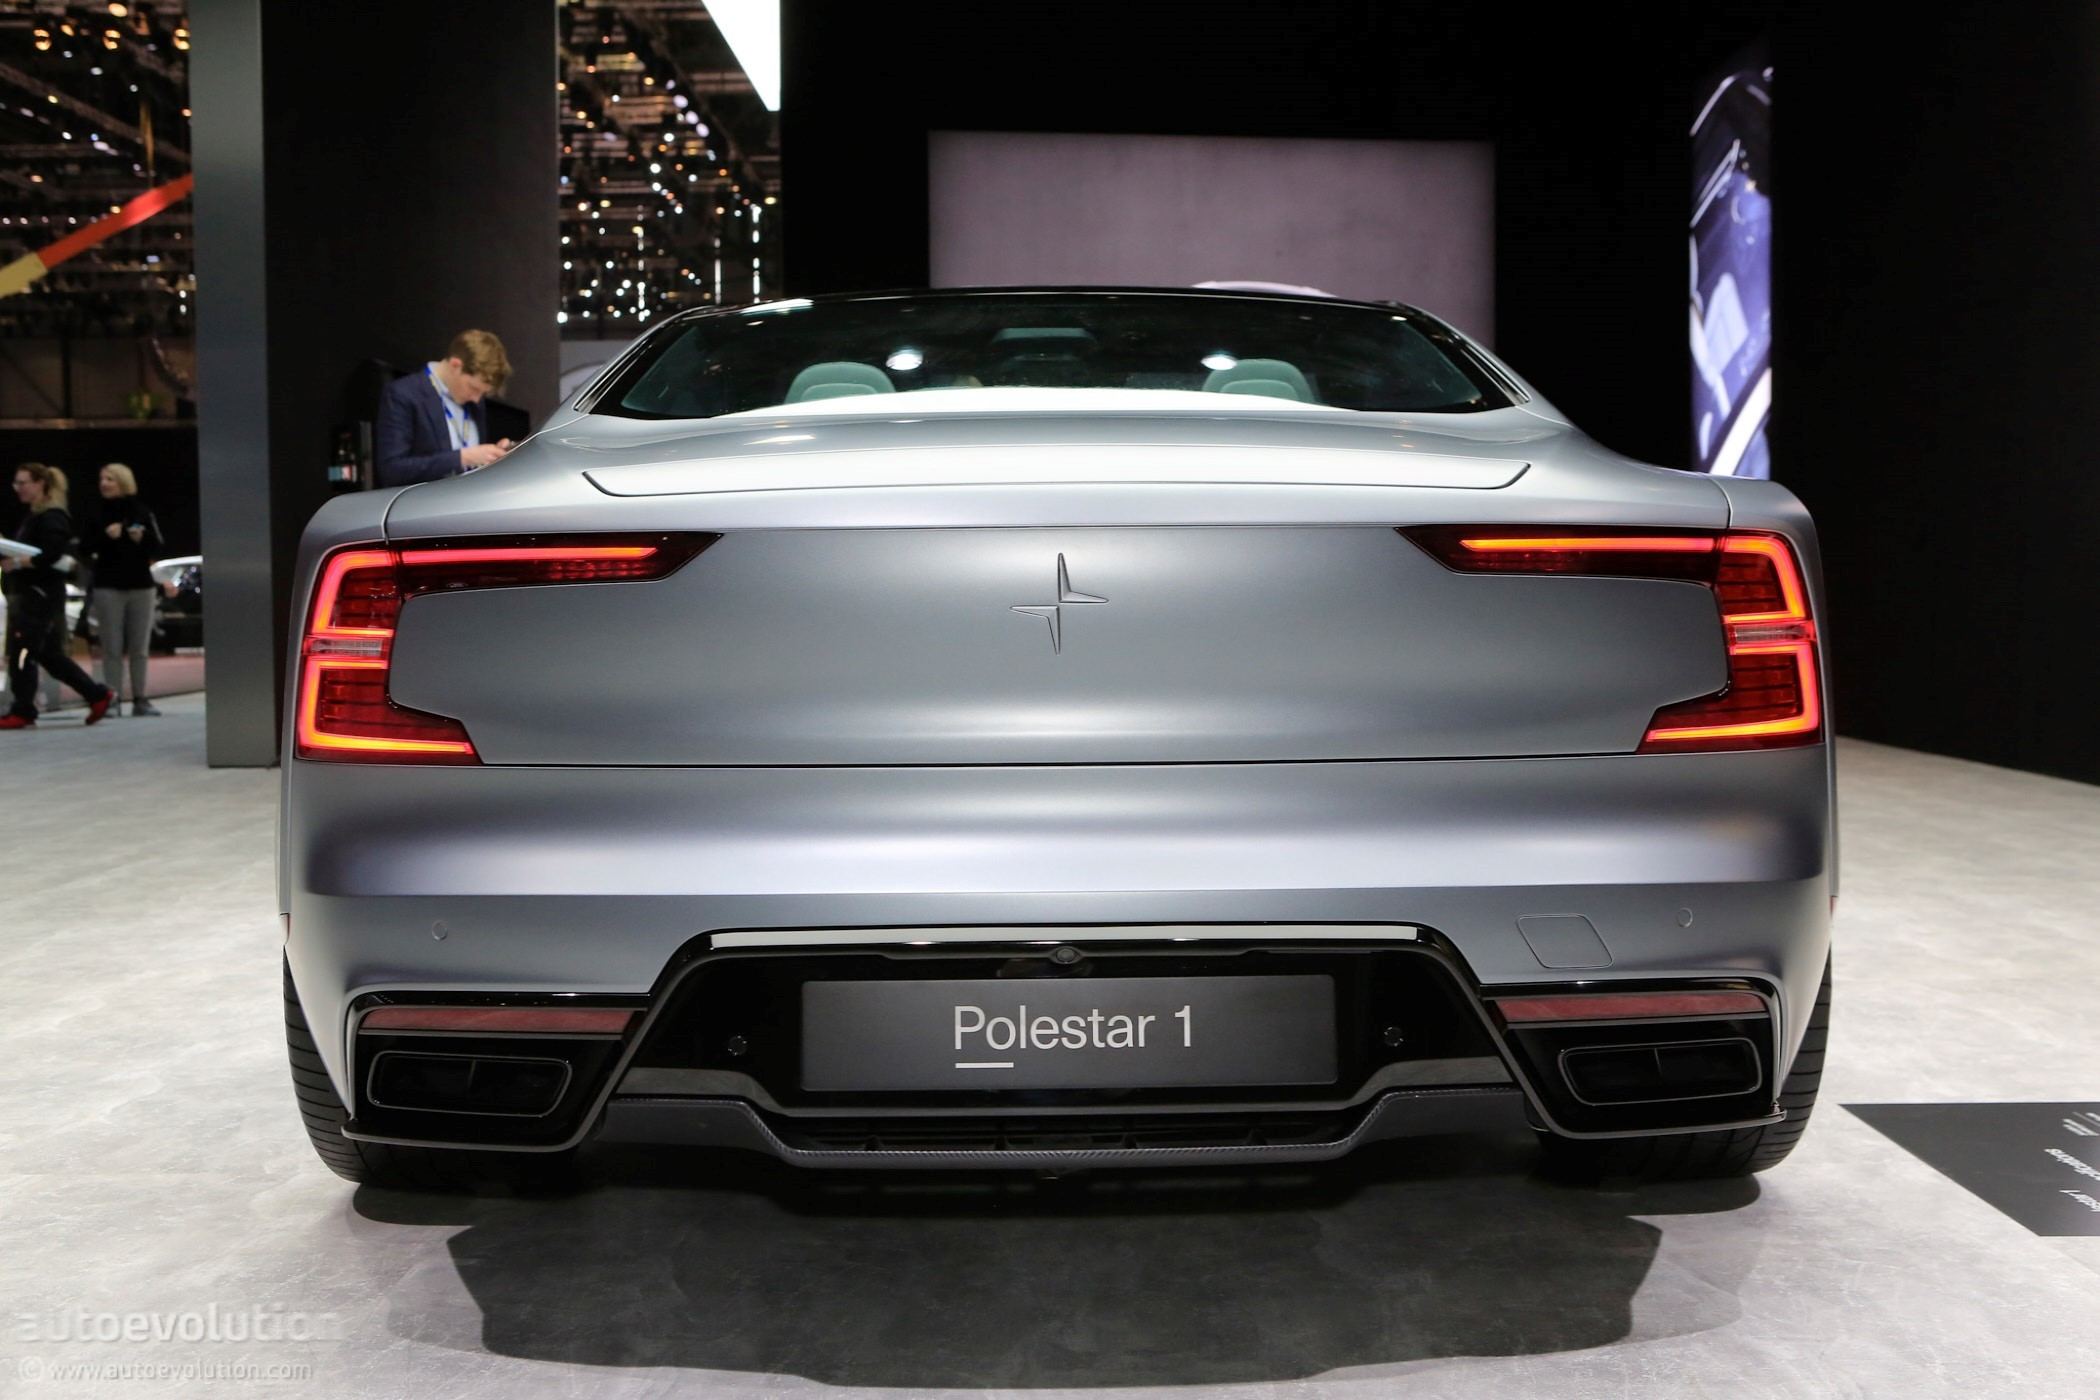 Pre-orders start for Polestar's debut plug-in hybrid